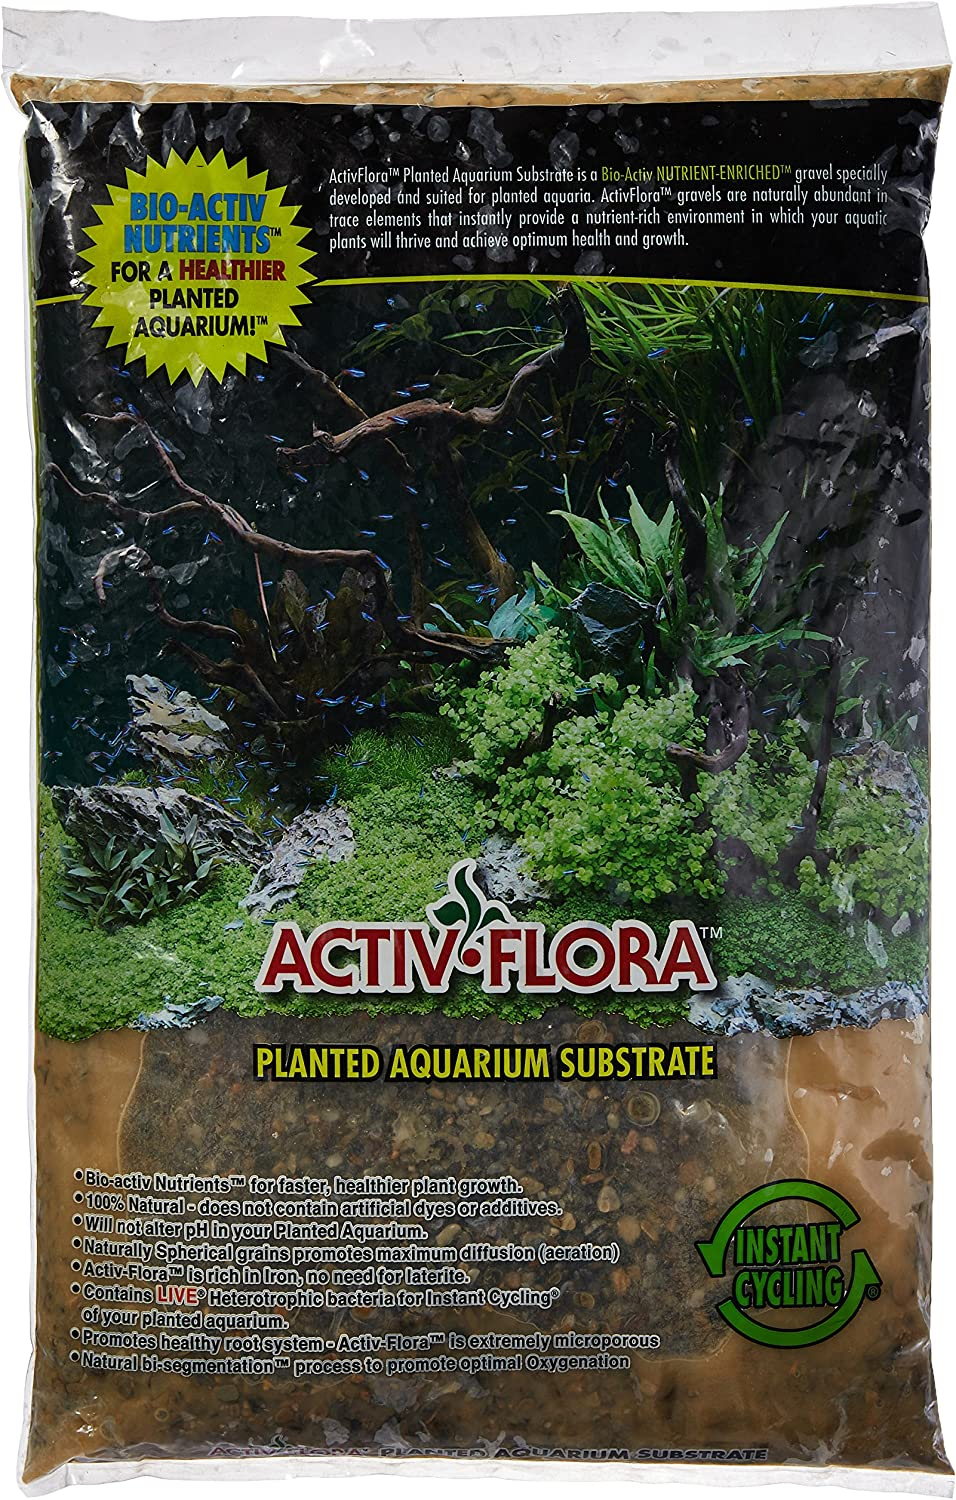 Spring new work one after another Activ-Flora Lake Gems 20-Pound for Excellent Aquarium